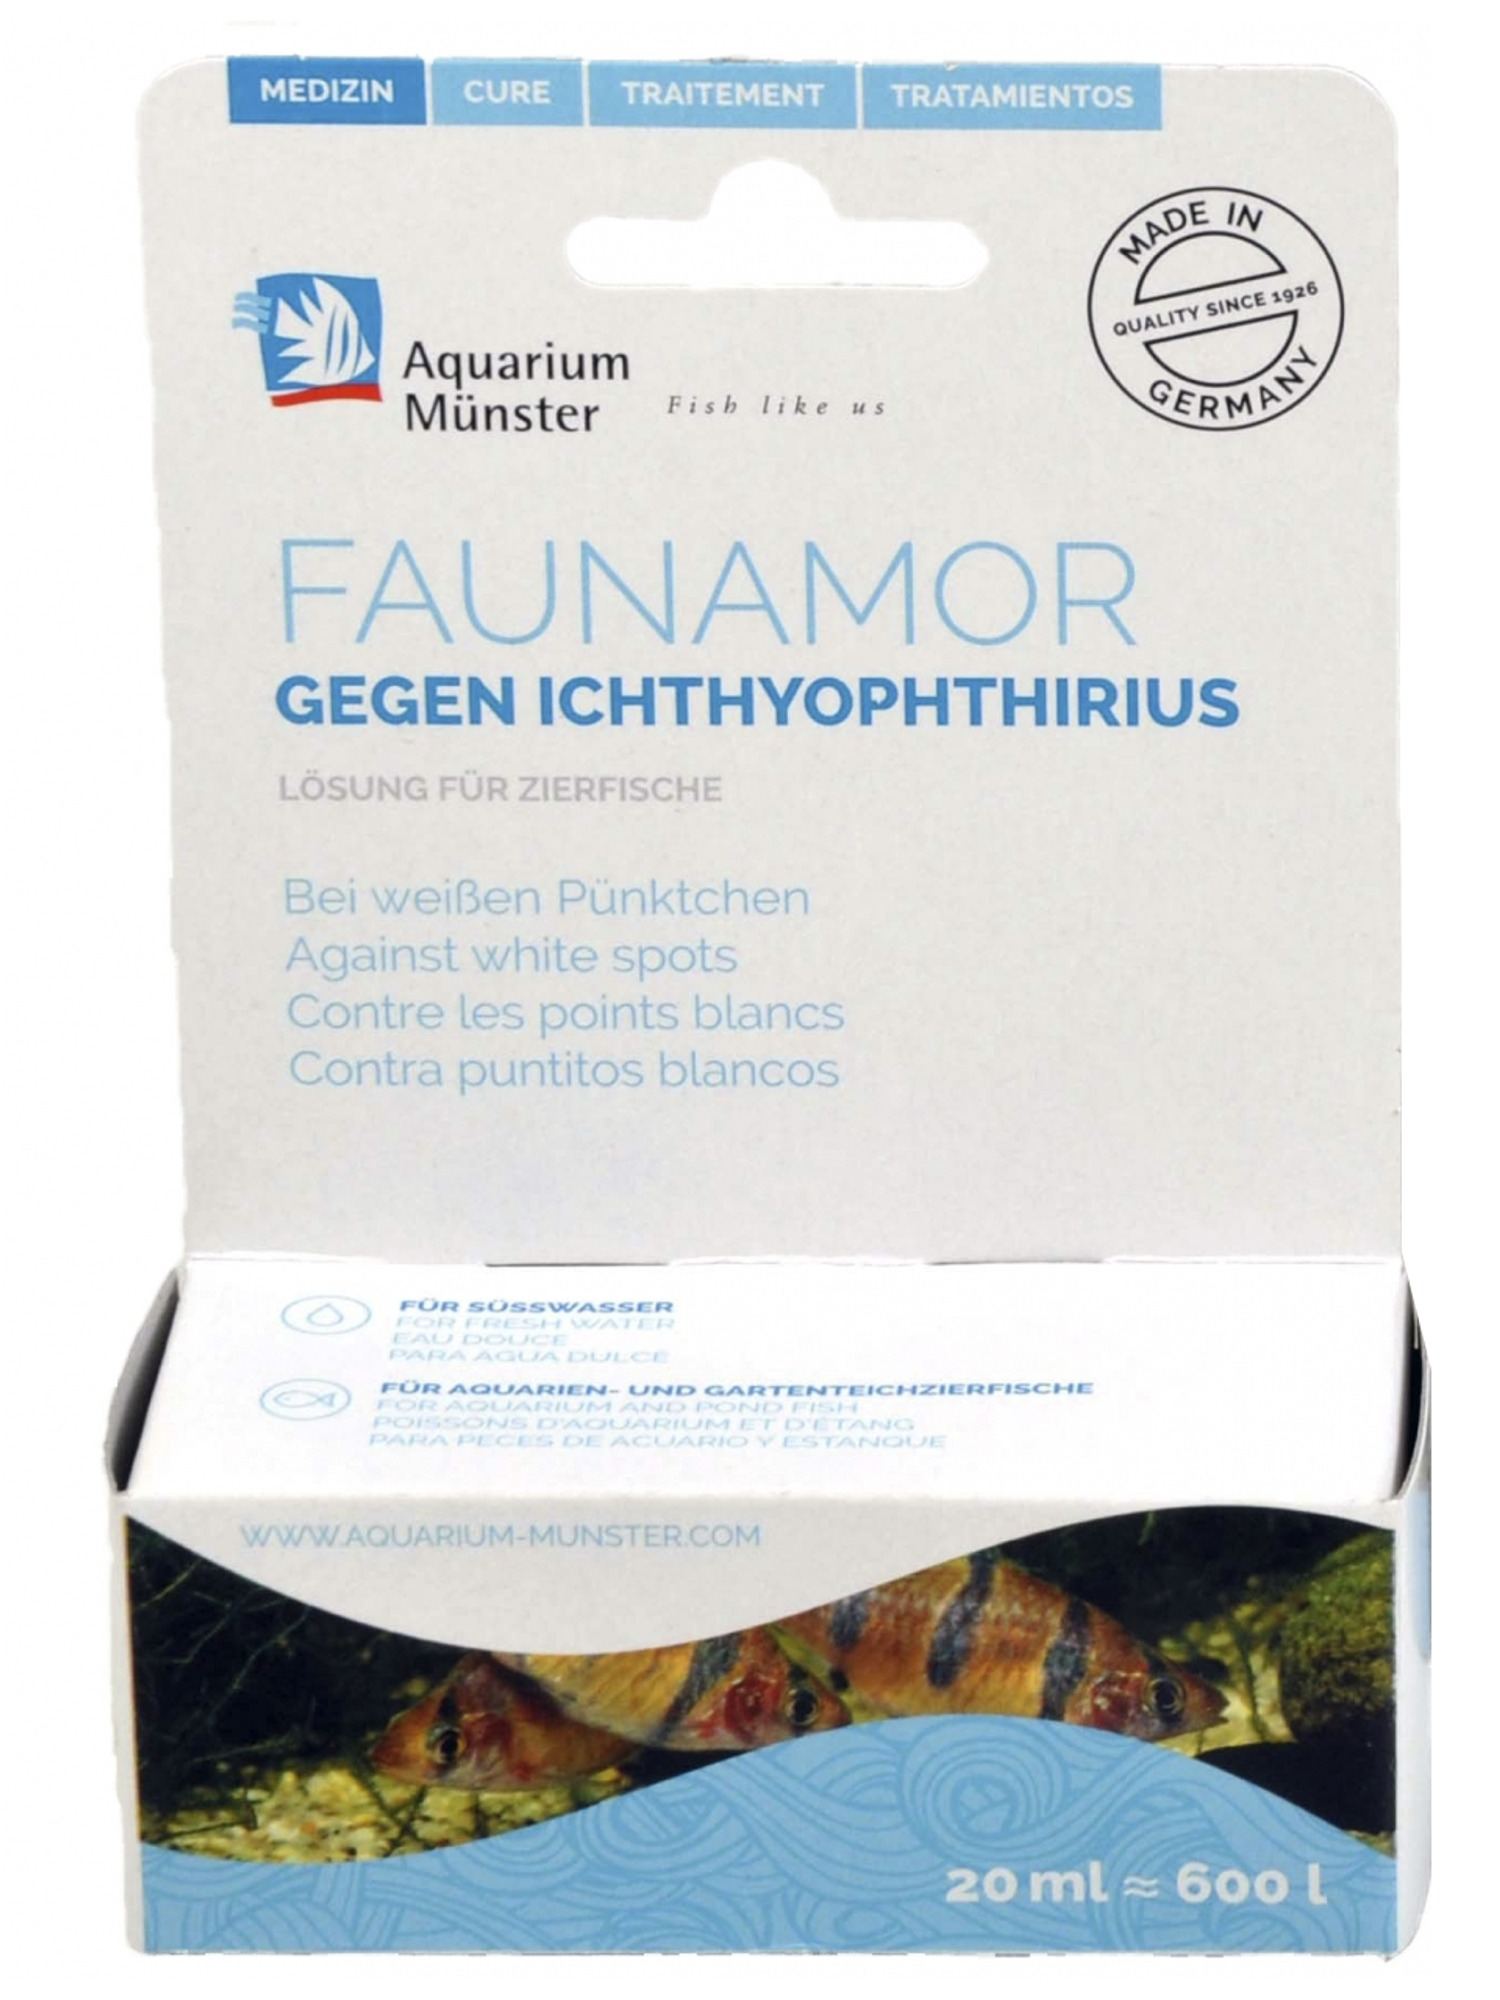 aquarium-munster-faunamor-traitement-points-blanc-poisson-aquarium